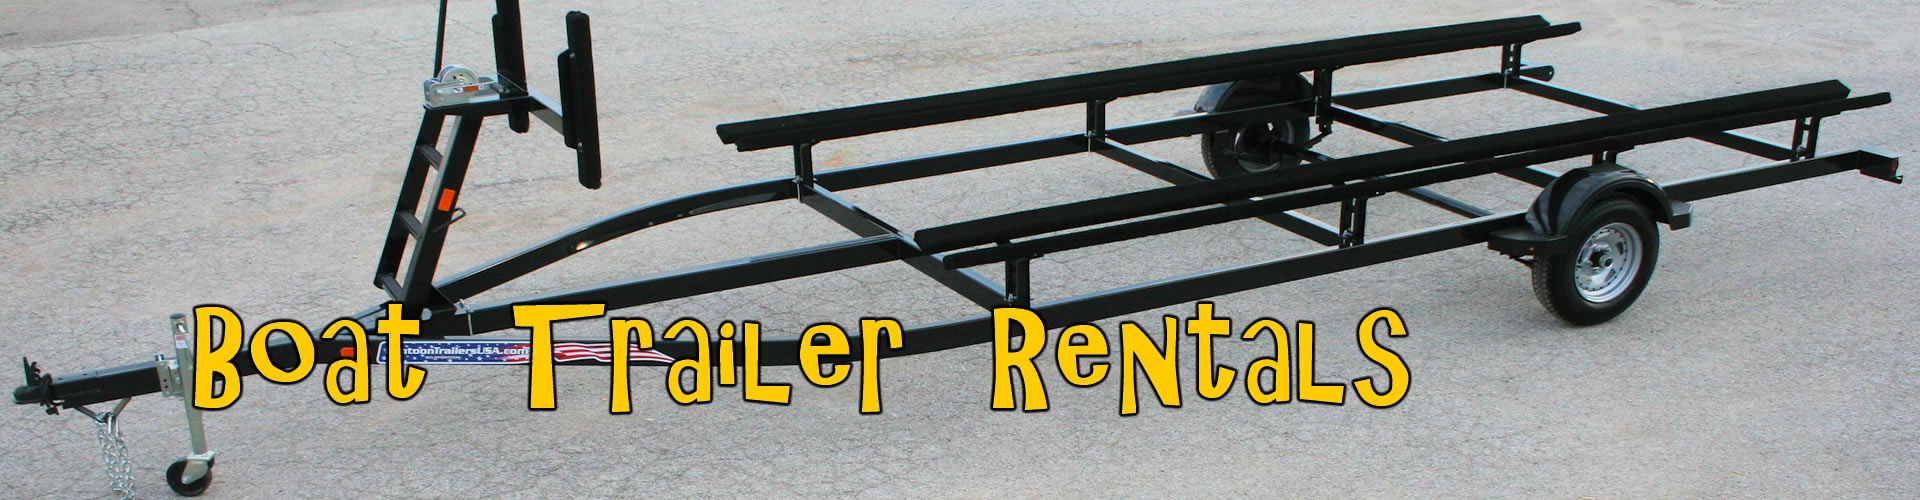 Boat Trailer Rental Rates, Tampa